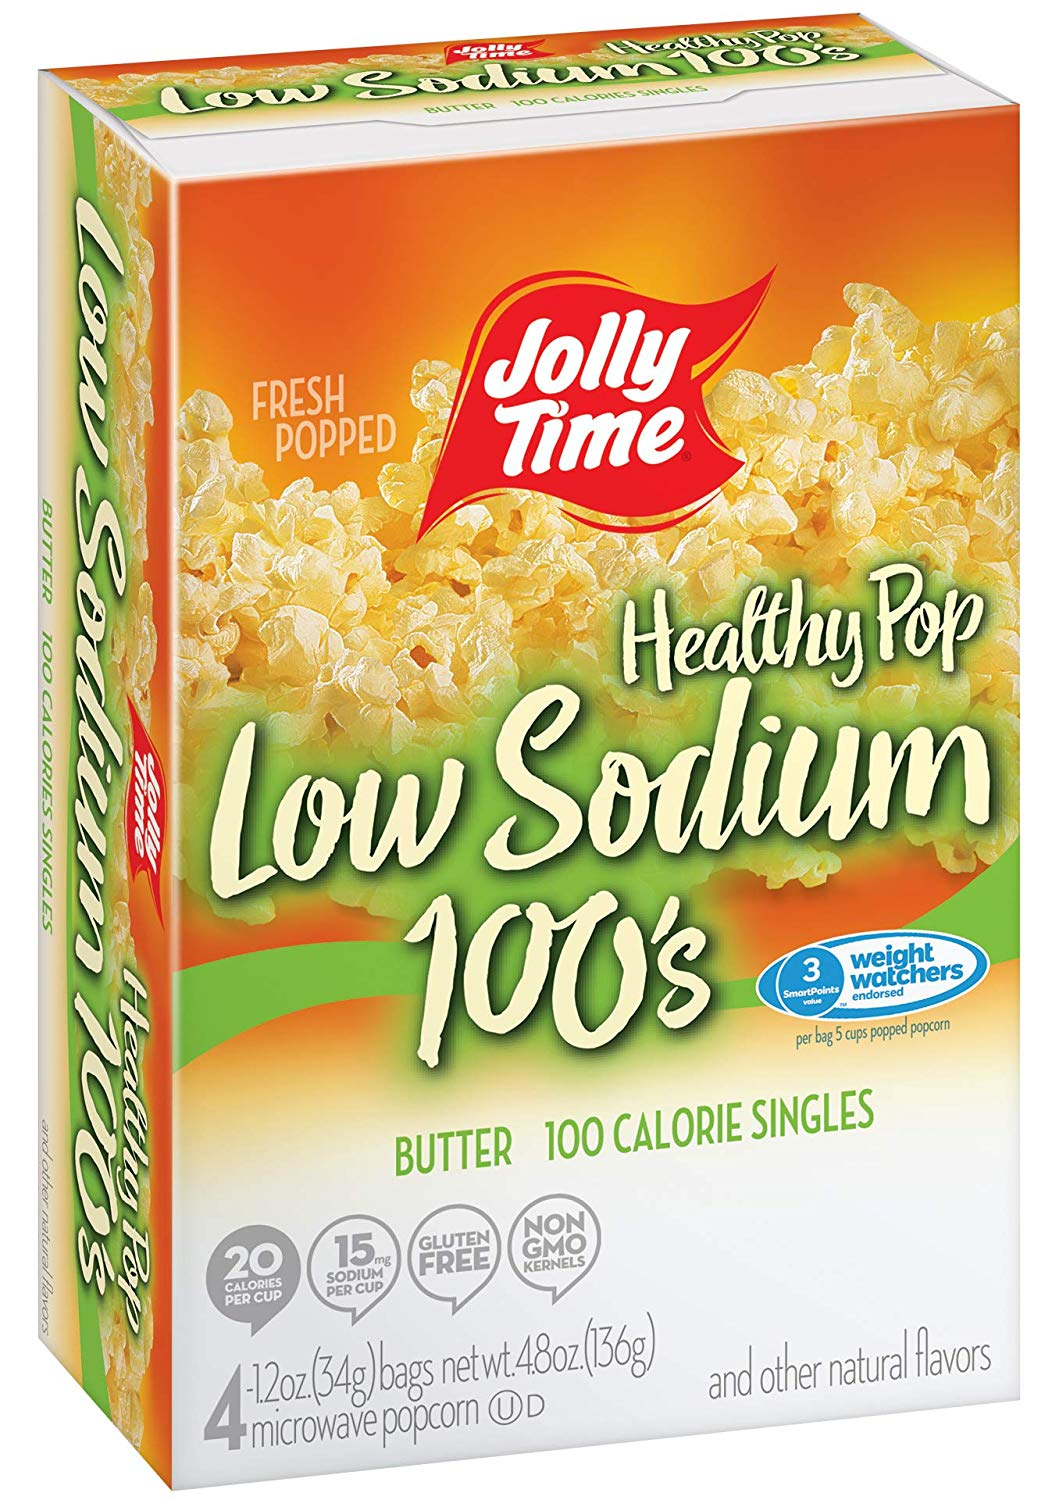 Jolly Time Healthy Pop Low-Sodium 100's Microwave Popcorn